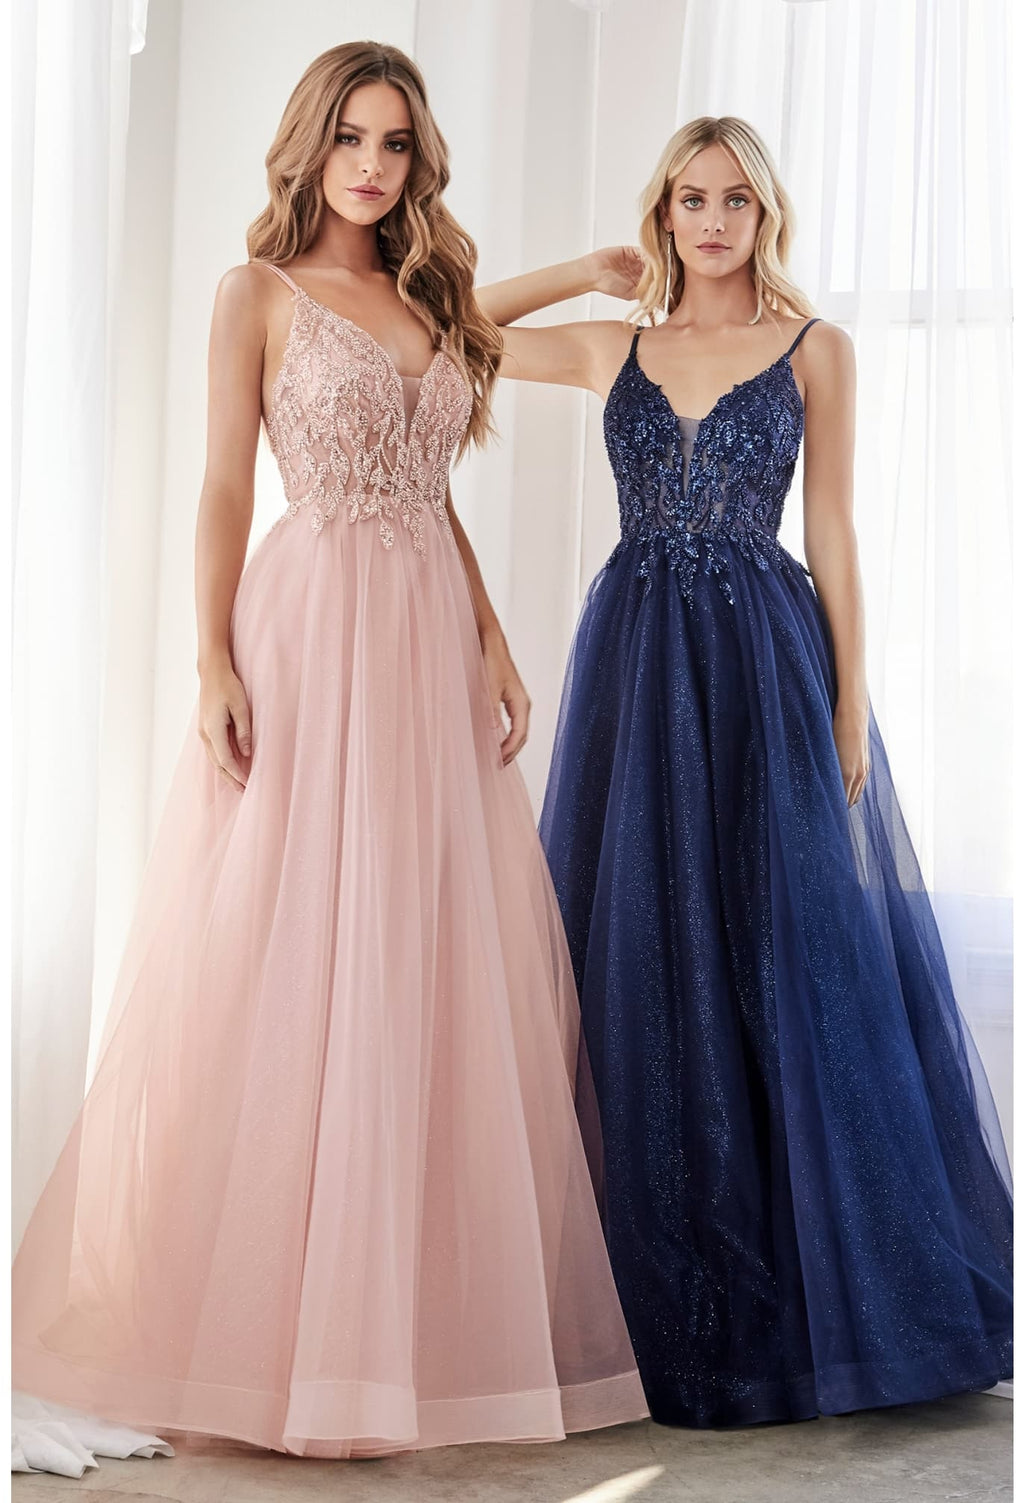 Chase, Colored A-line dress with beaded applique bodice and layered tulle skirt bridesmaids gown - KC Haute Couture Wedding Dress